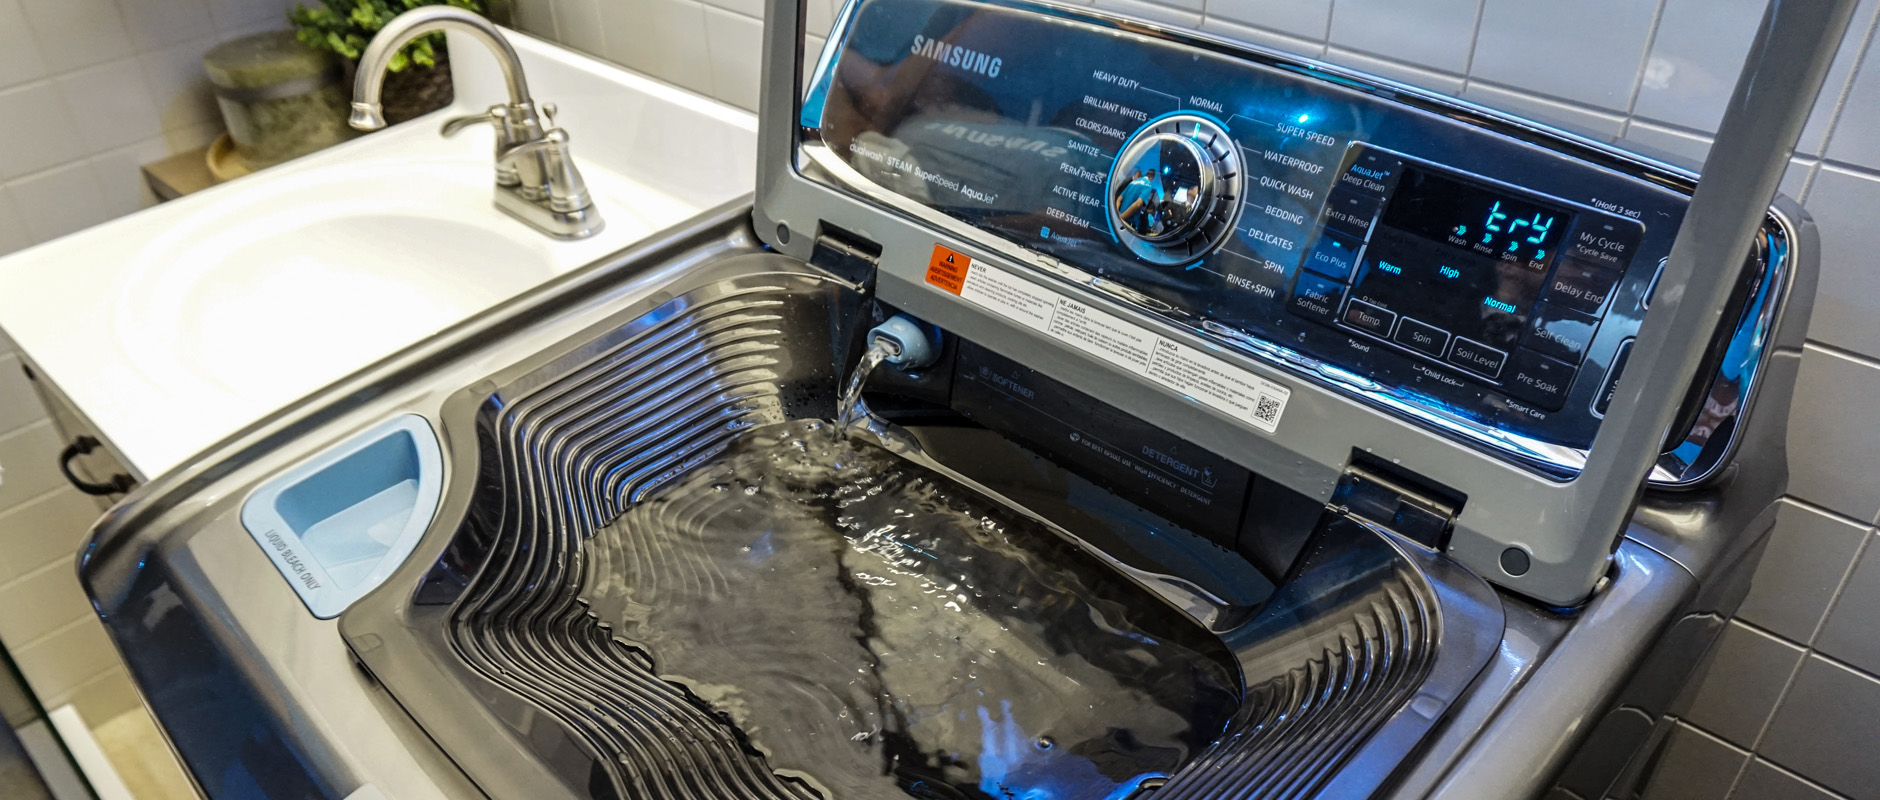 Samsung S Washer With Built In Sink Is Finally Available